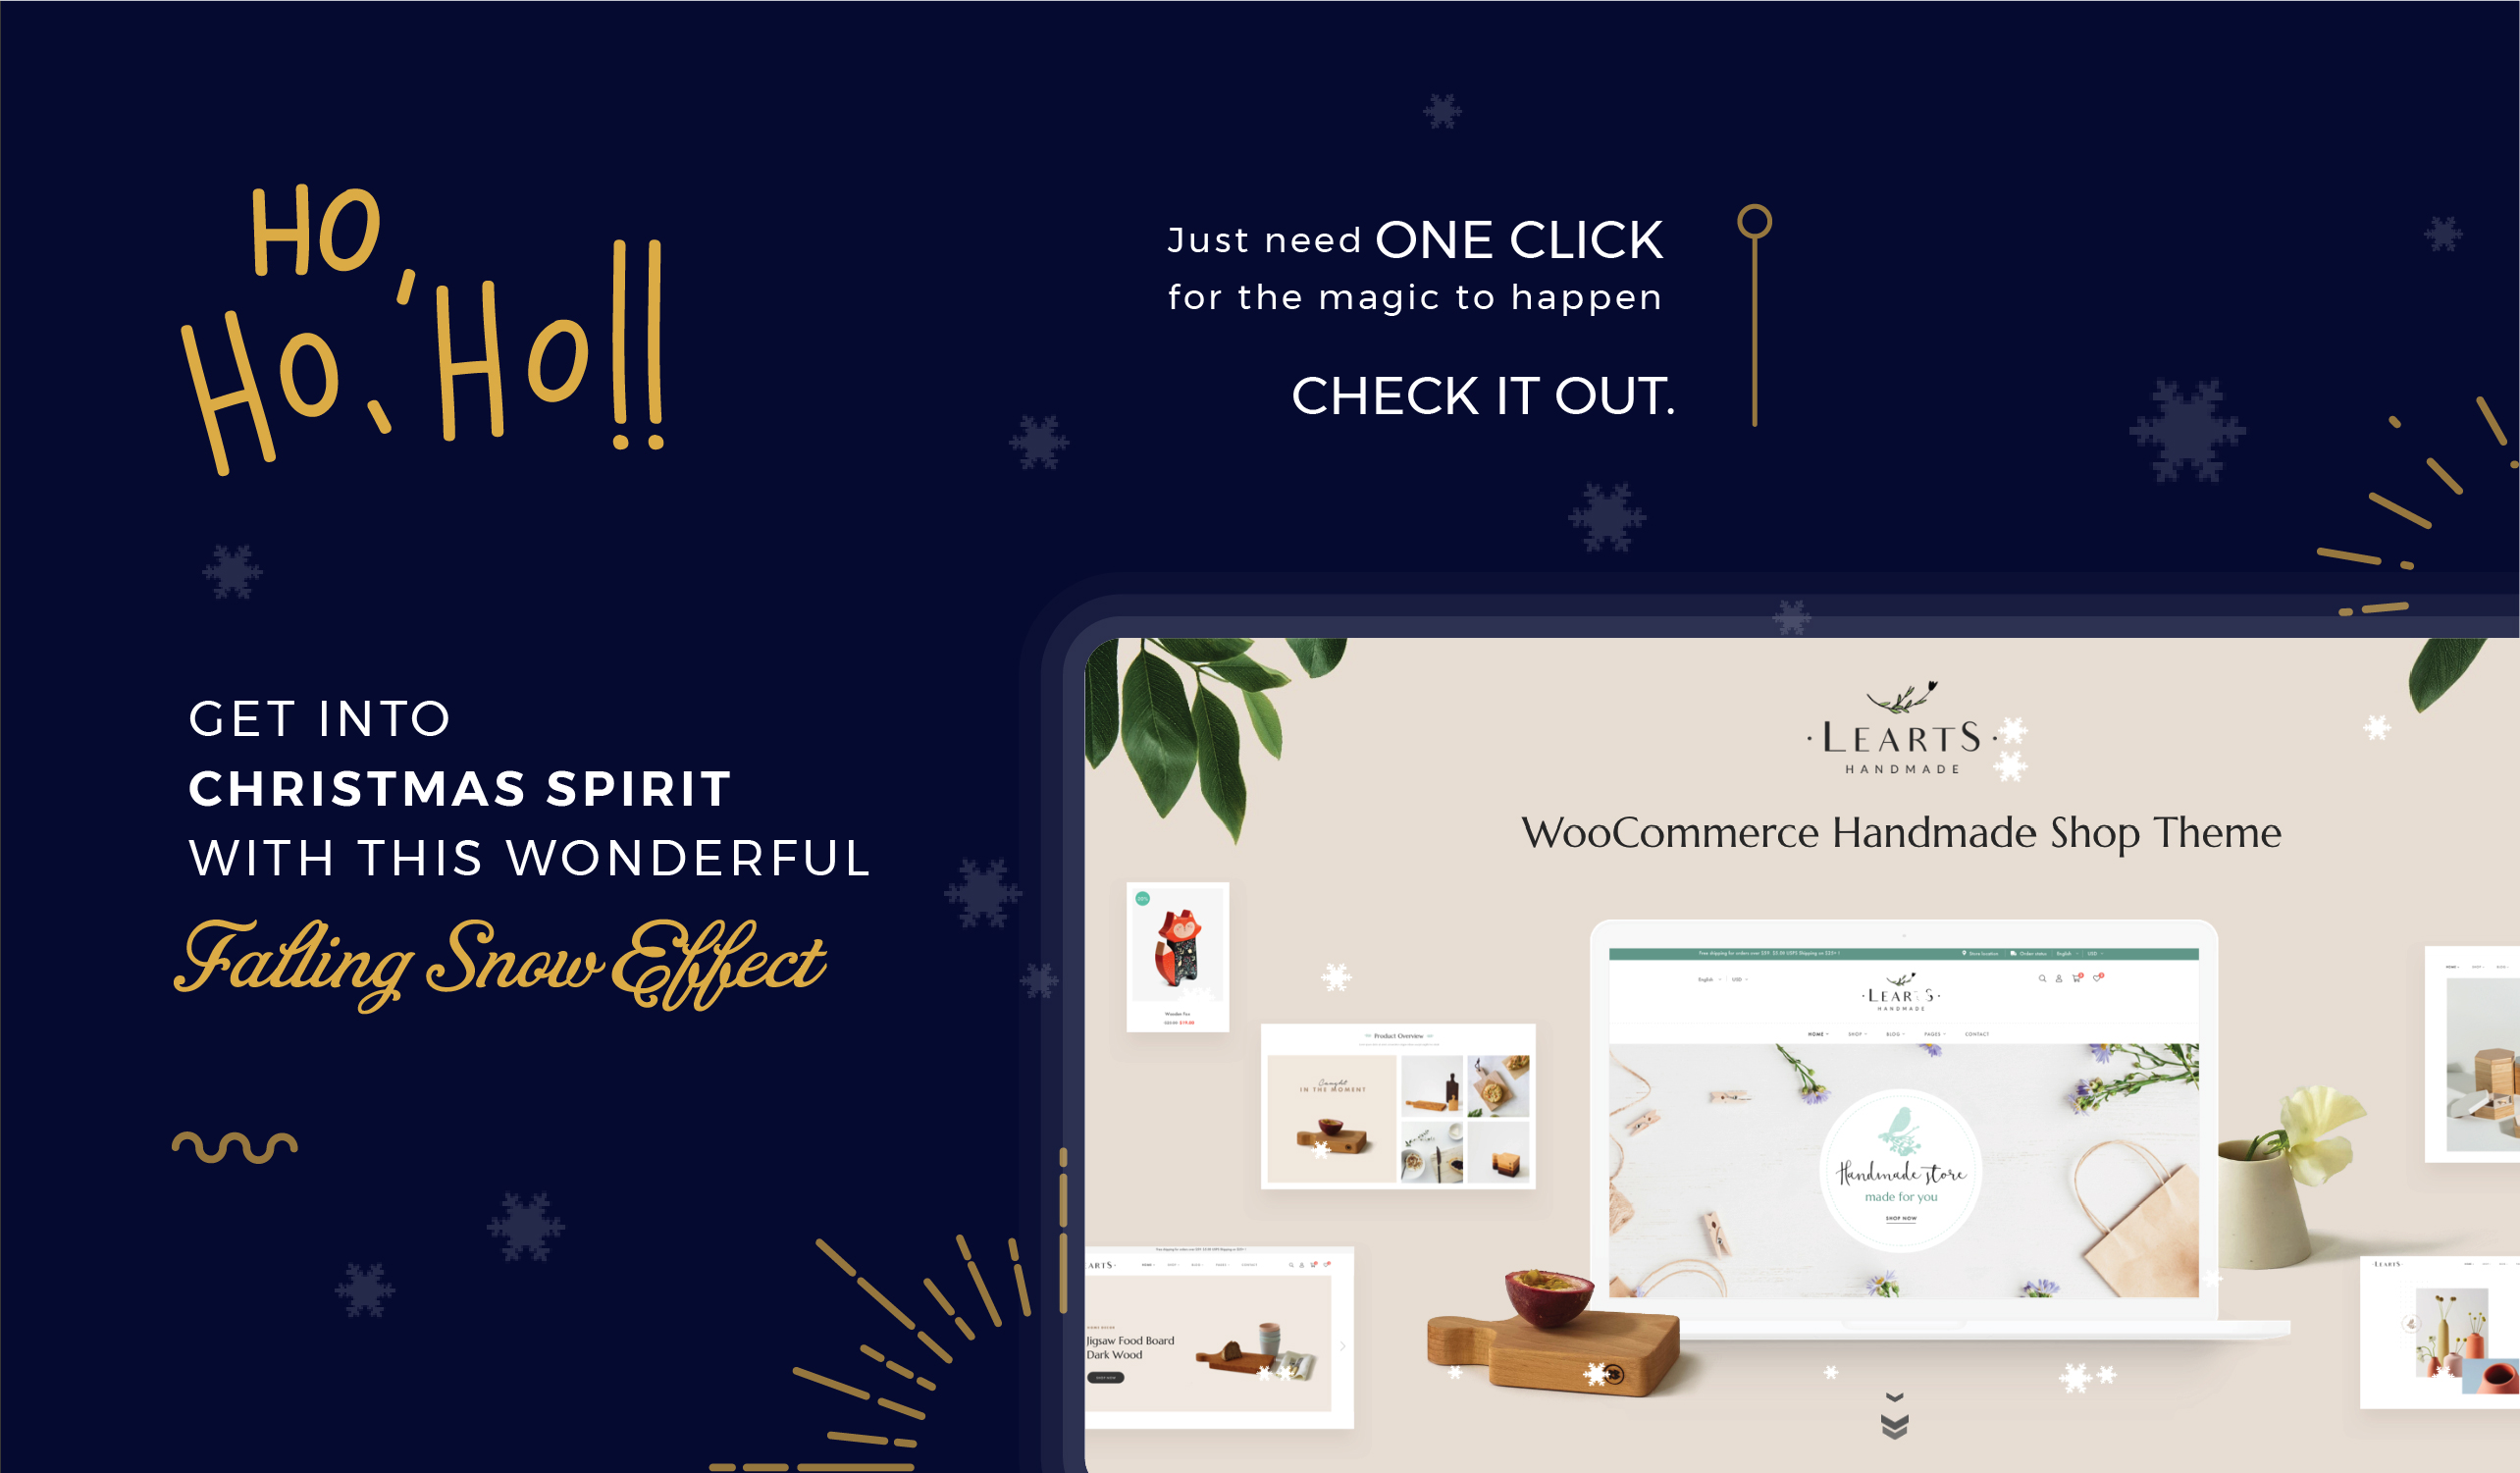 LeArts - Handmade Shop WooCommerce WordPress Theme - 6